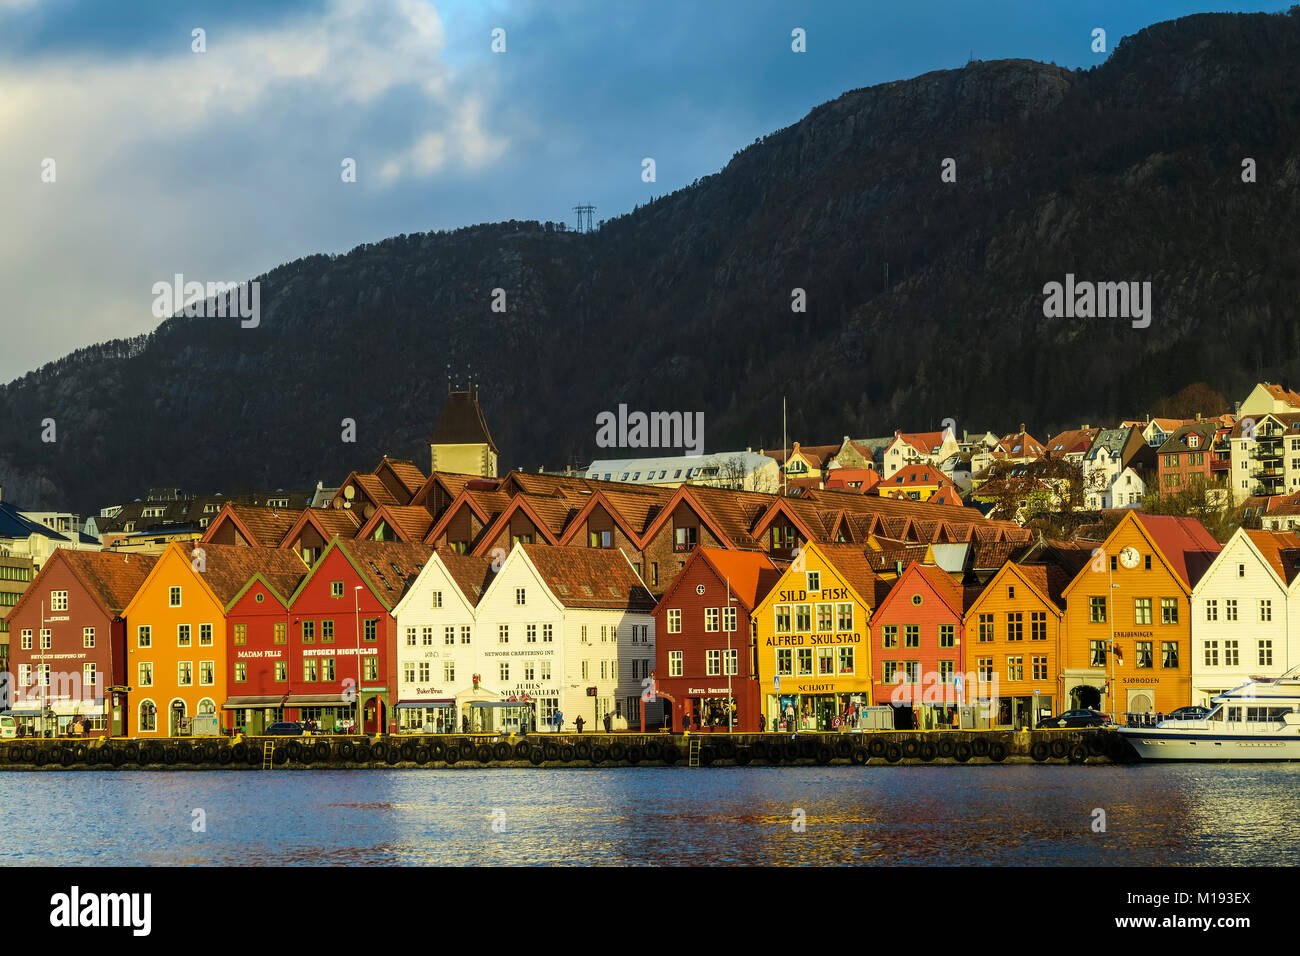 Historic Hanseatic wooden waterfront commercial buildings of the World Heritage listed Bryggen (the dock) on Vagen - Stock Image